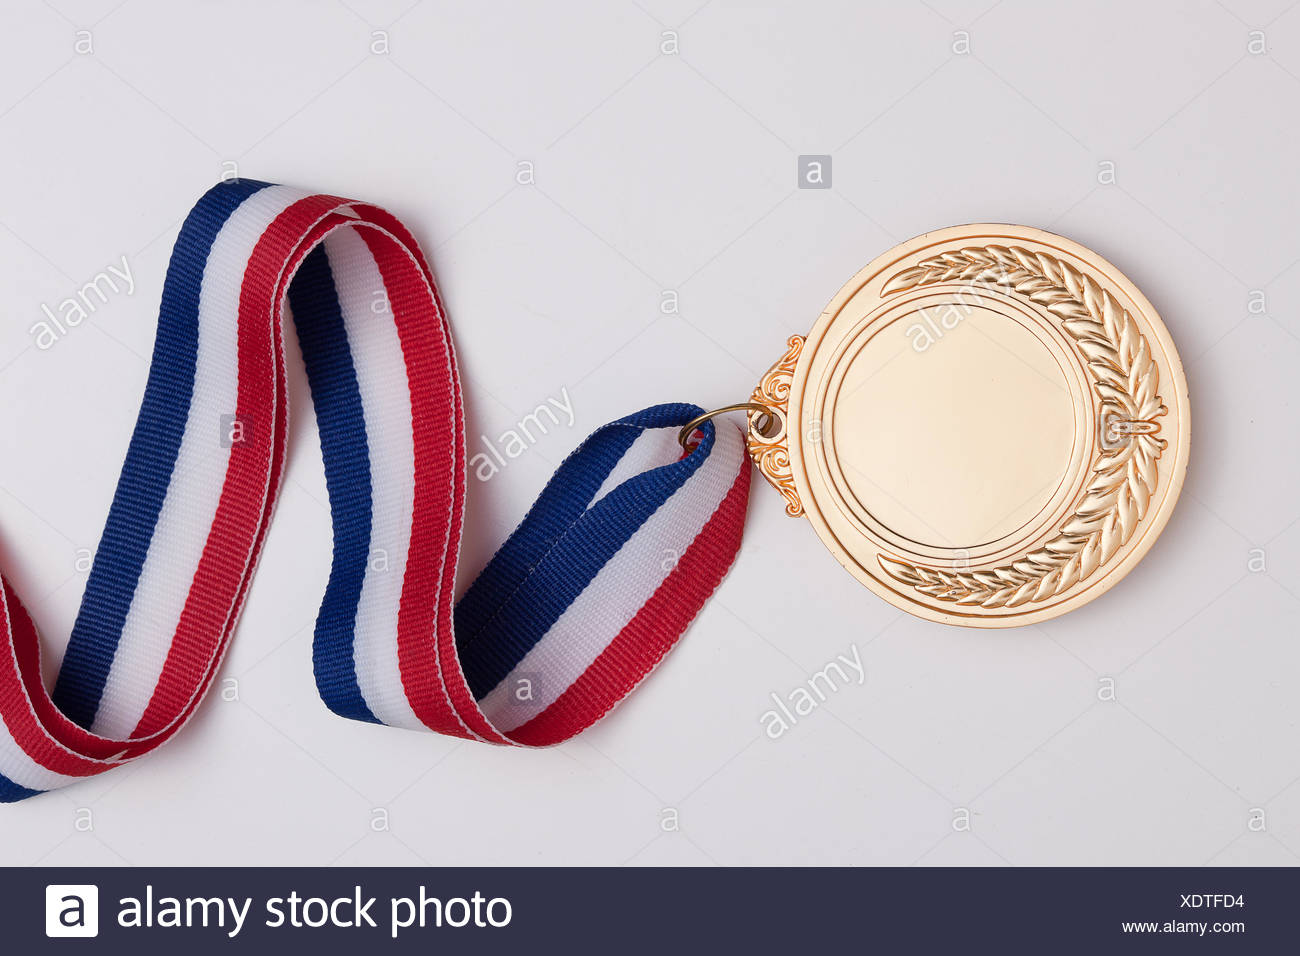 Medals - Stock Image